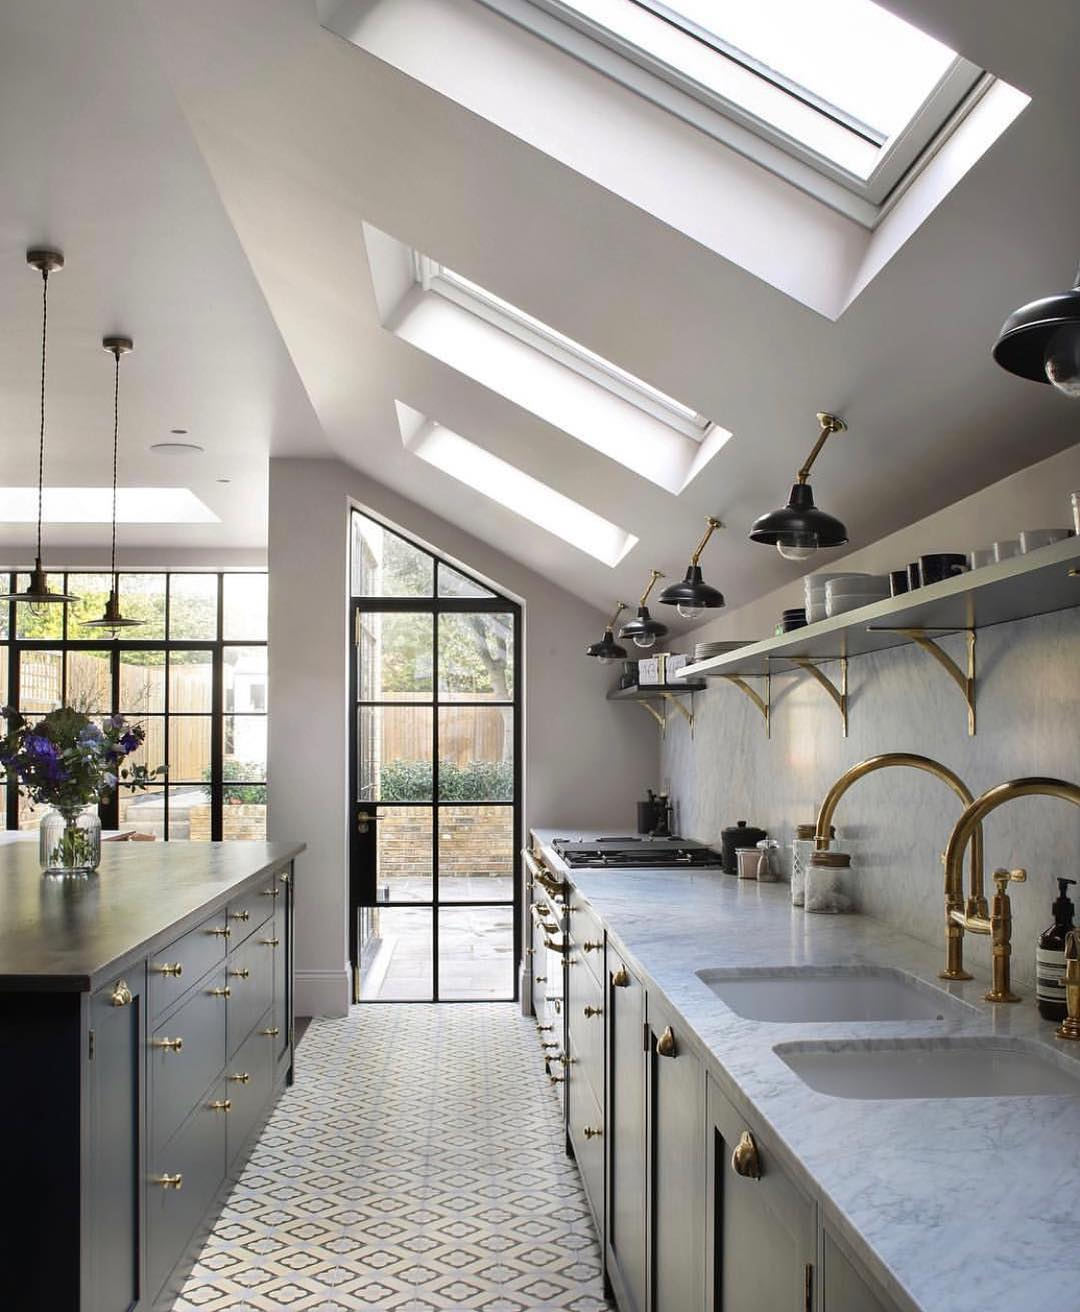 Brass Hardware, The Stone, The Windows And That Lighting Looks Cool In Contemporary Kitchen